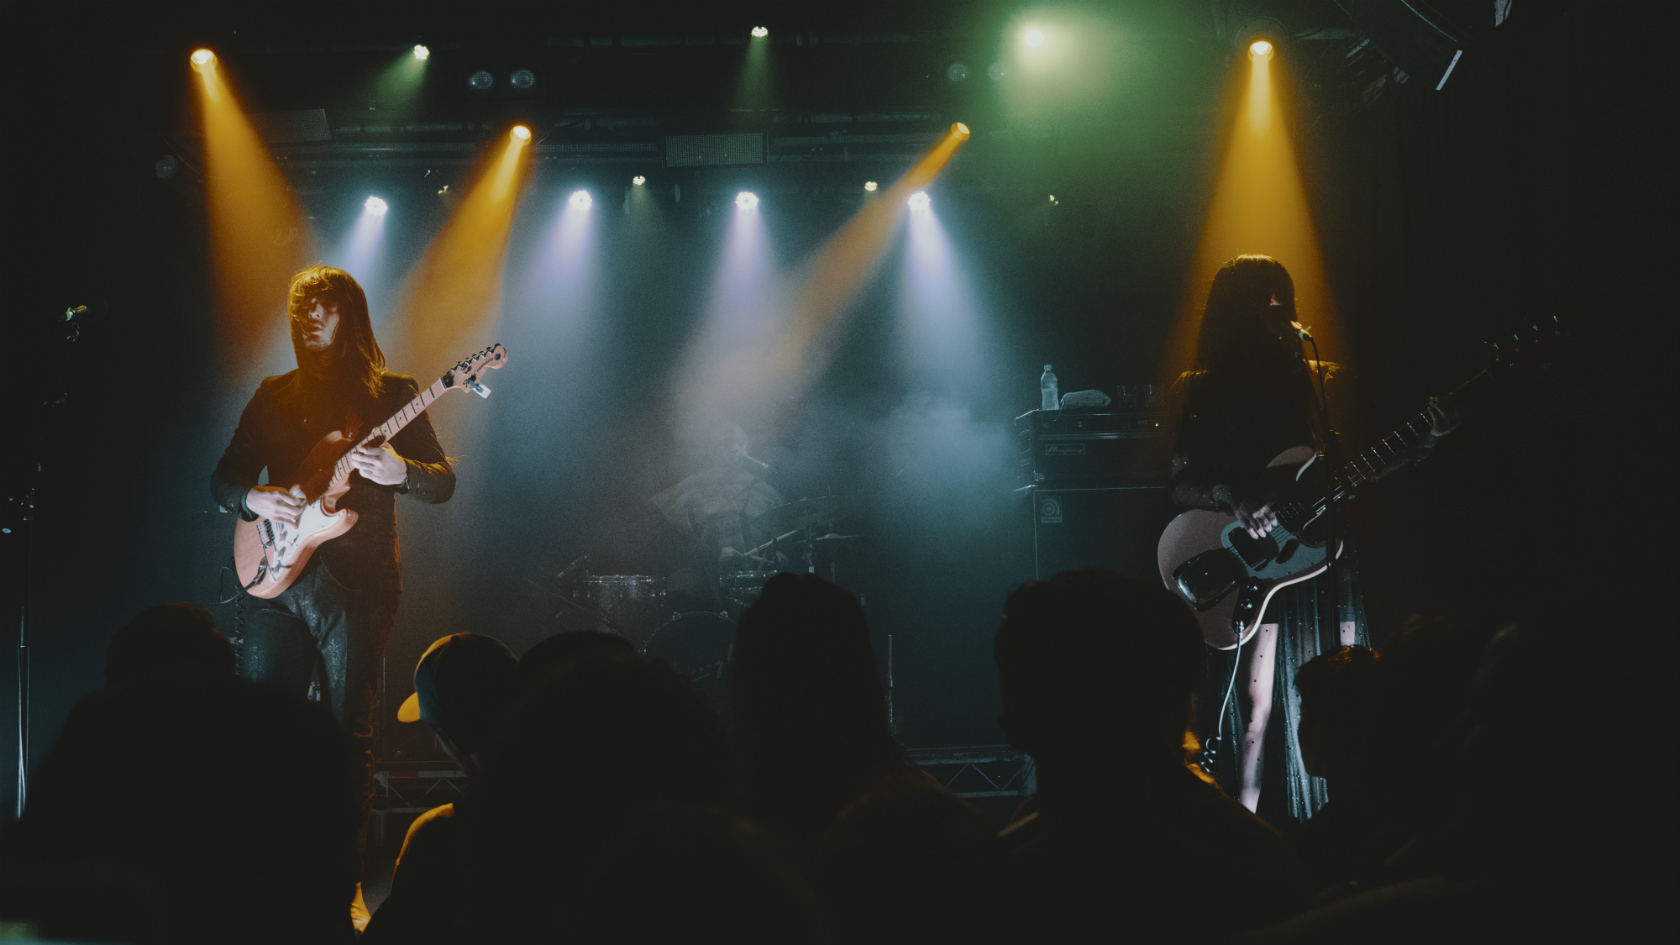 Live Review: Khruangbin @ The Metro, Sydney - lifewithoutandy